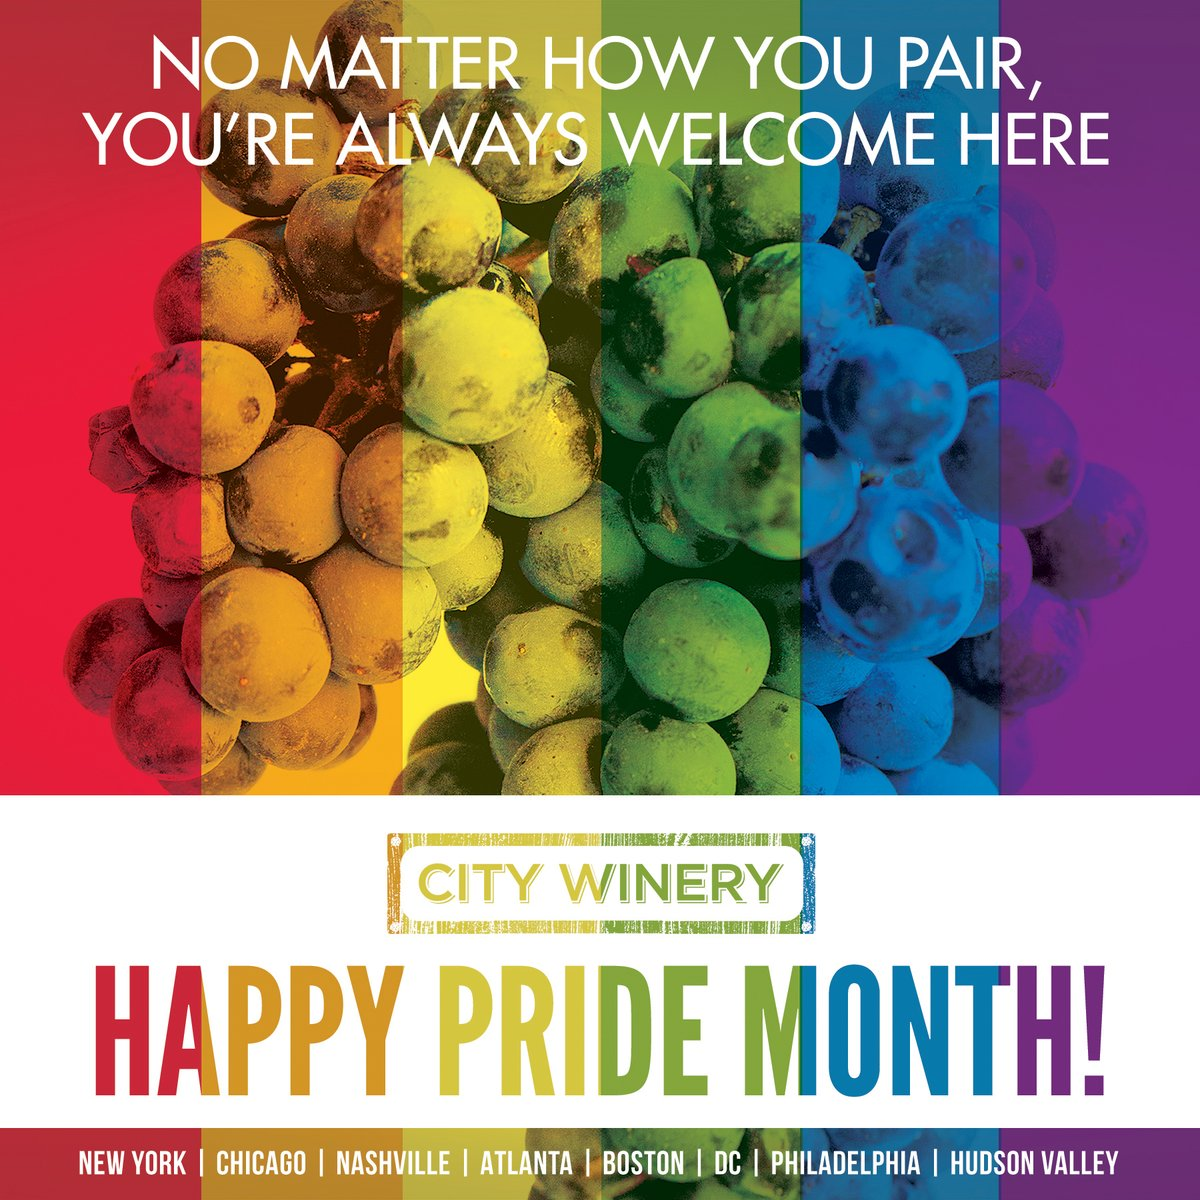 Today begins Pride Month. All are welcome at City Winery. 🏳️🌈 ✊🏿 ✊🏾 ✊🏽 ✊🏼 ✊🏻 https://t.co/ZkhjA8405I